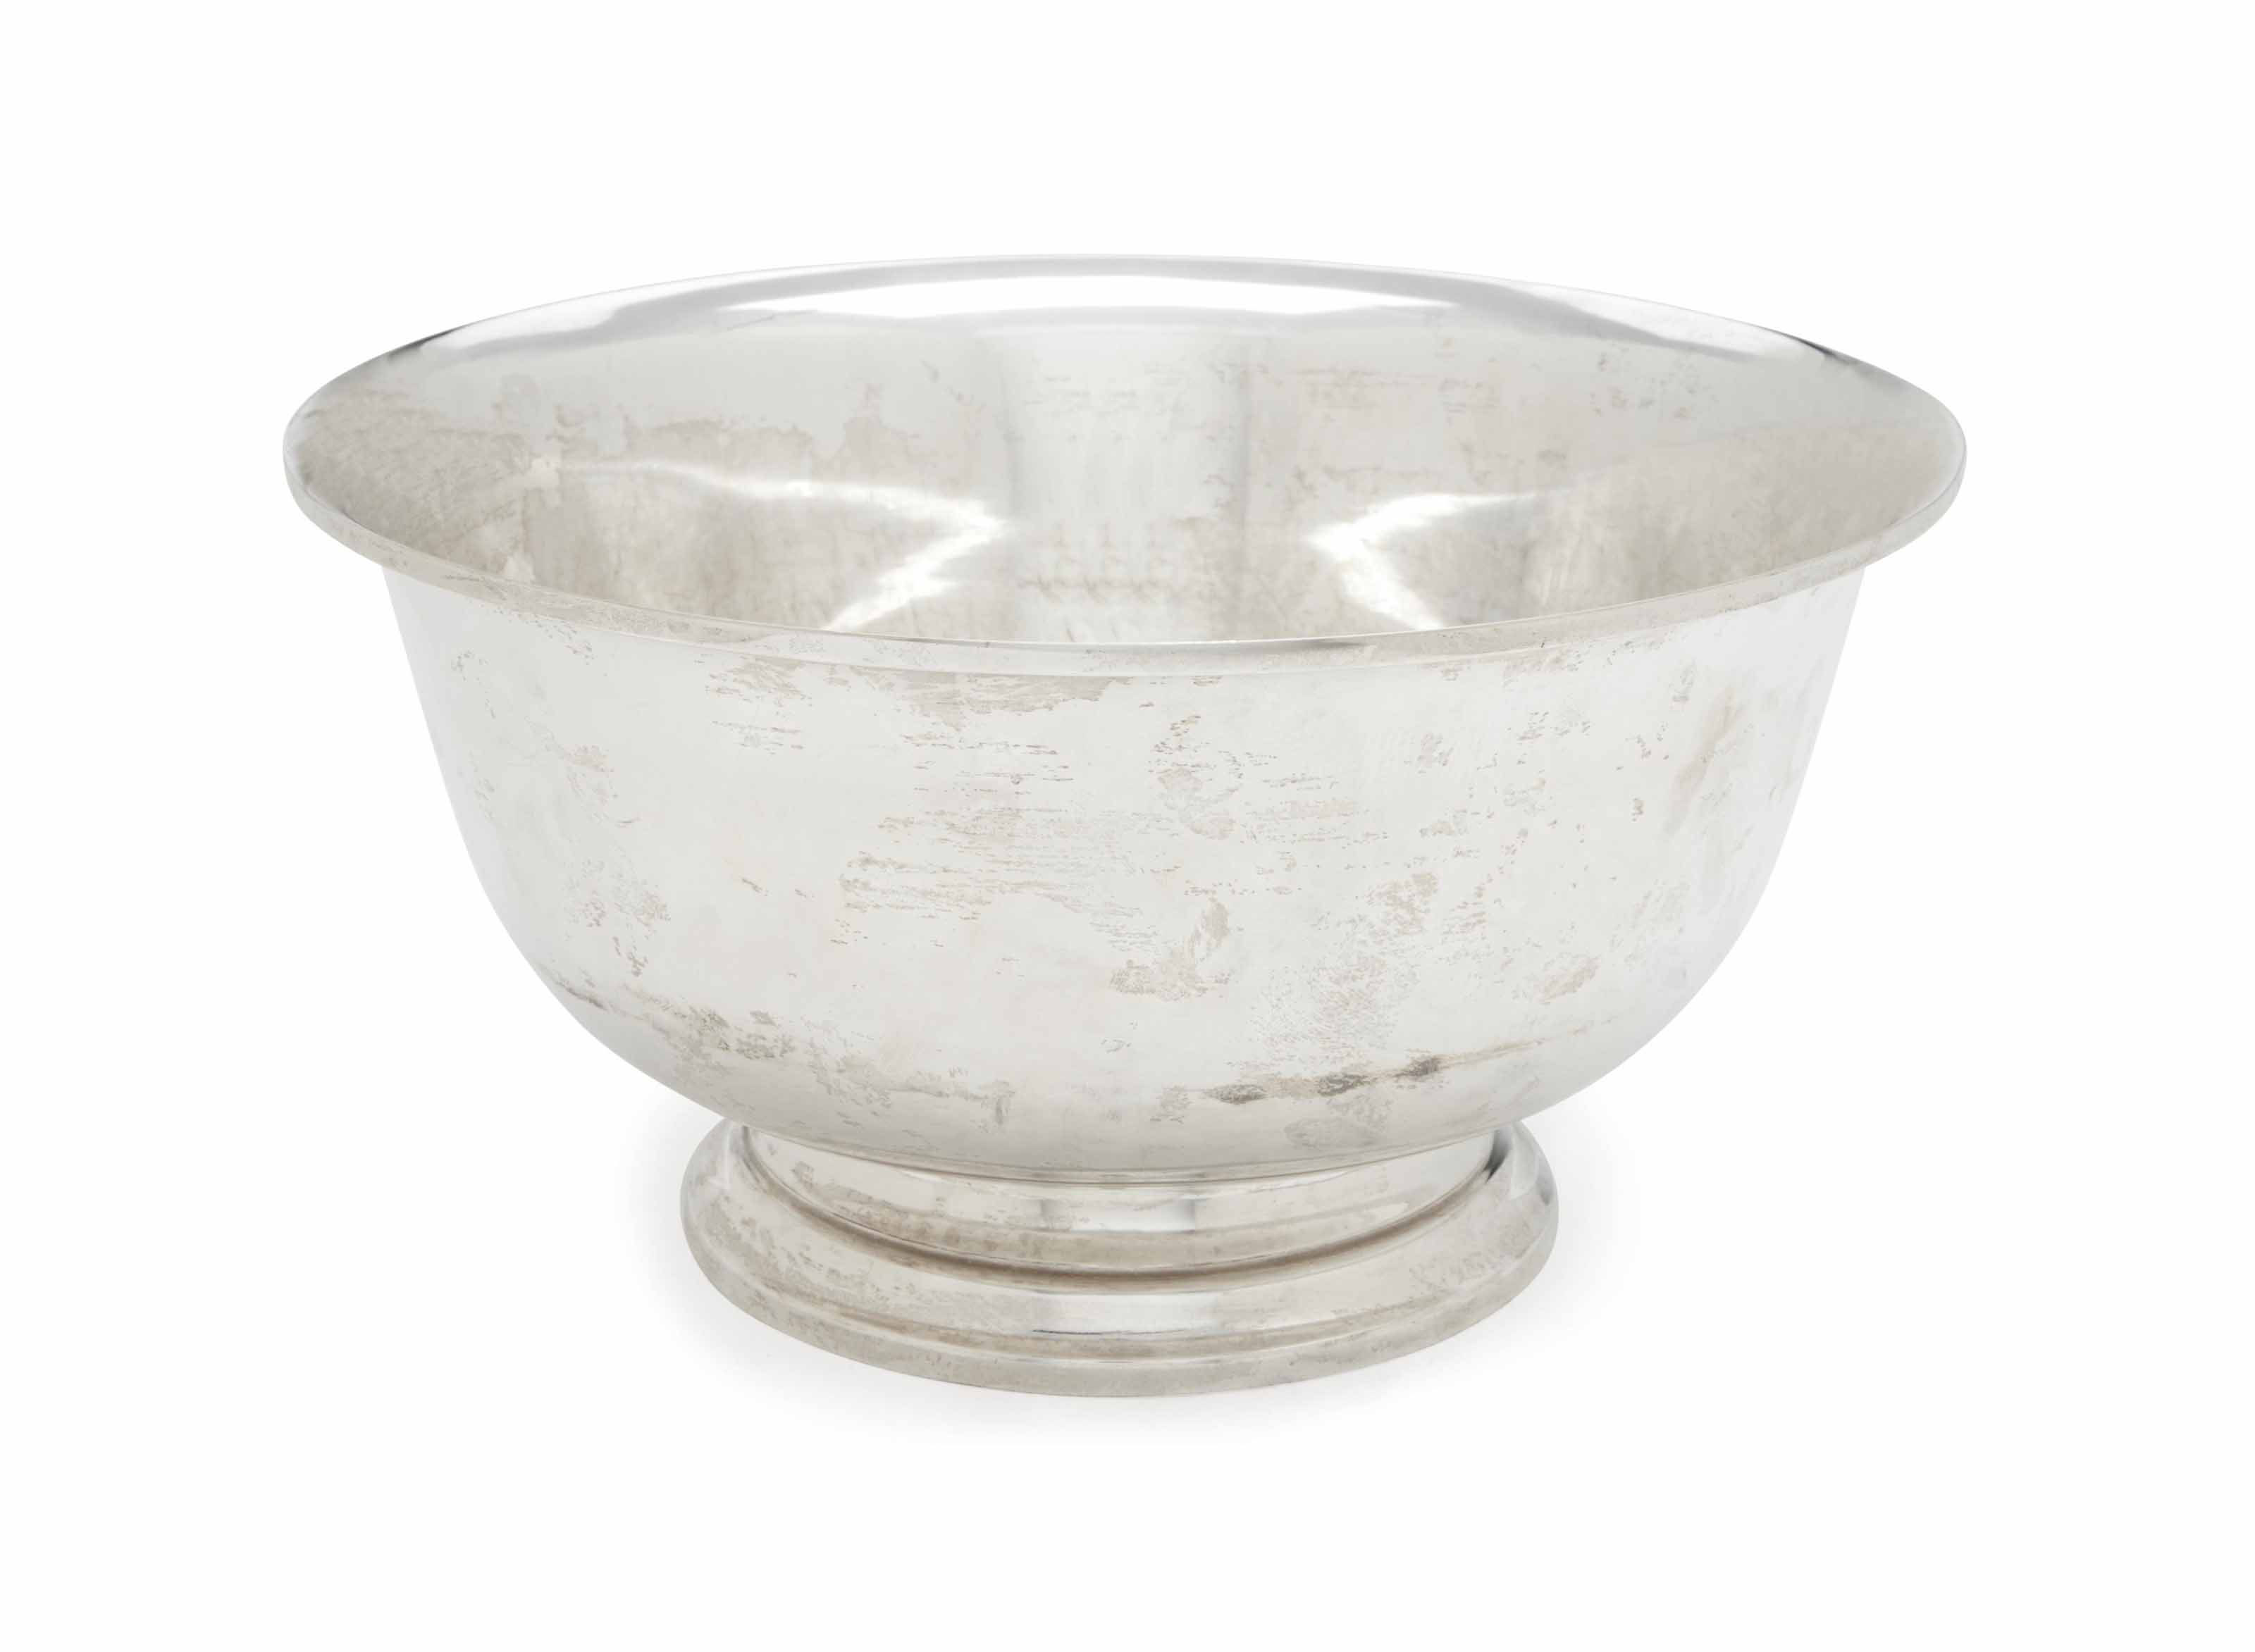 AN AMERICAN LARGE SILVER REVERE-STYLE BOWL